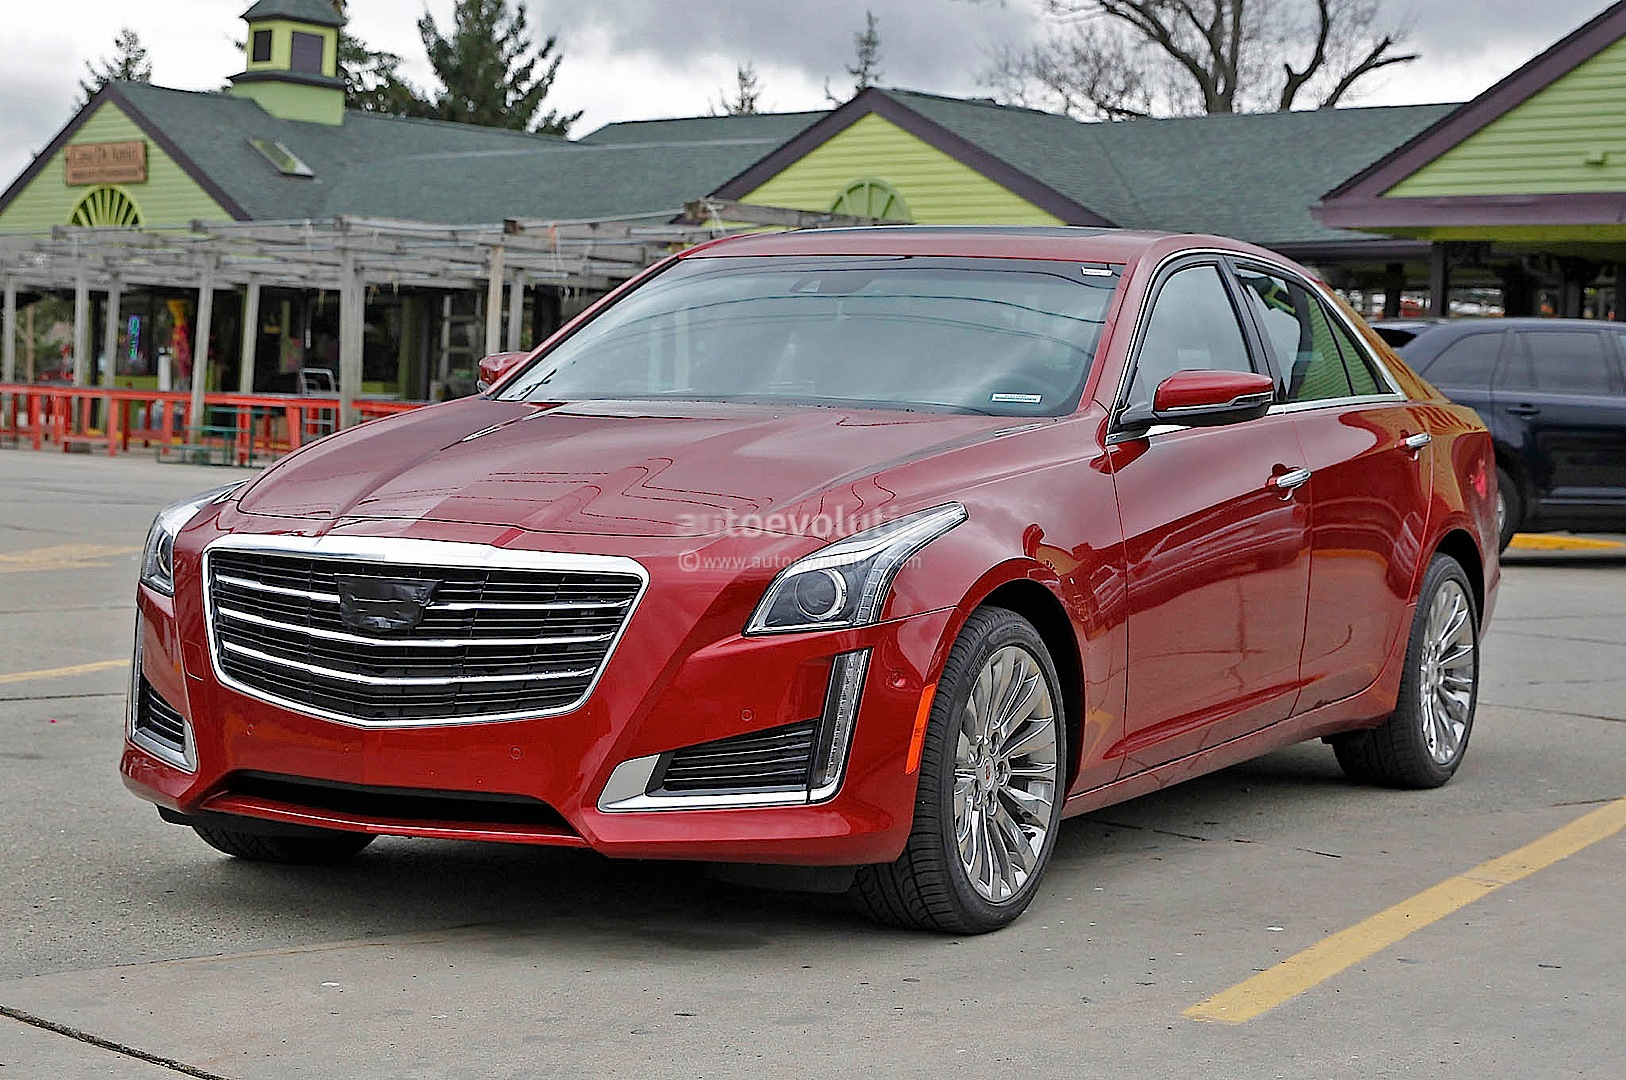 Red Camo Car >> 2015 Cadillac CTS Gets Revised Styling and Added Tech - autoevolution